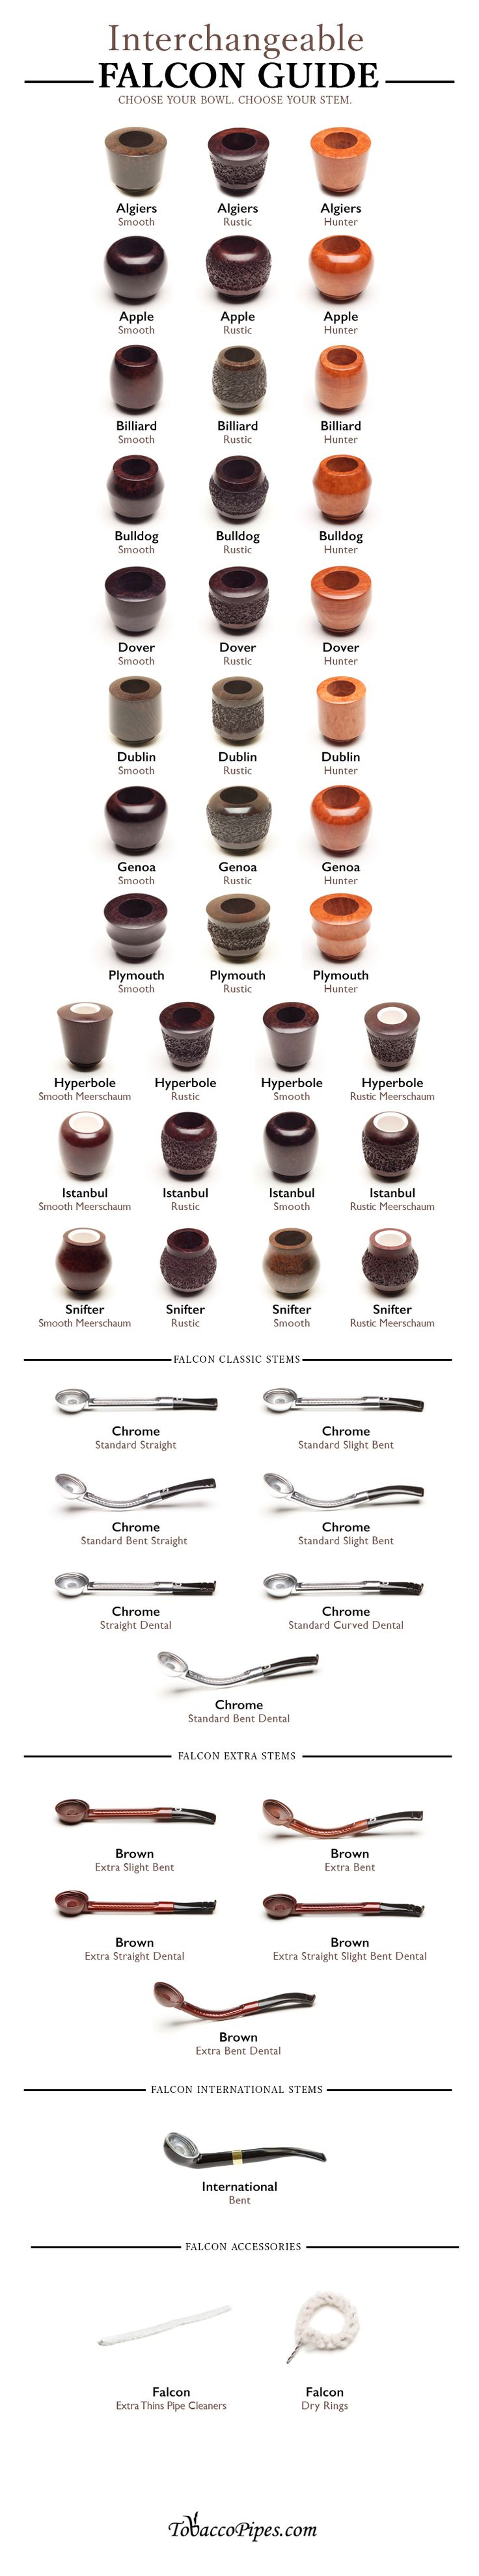 Use this simple infographic to choose your favorite Falcon Pipes pieces. View all Falcon bowls and stems in one place!